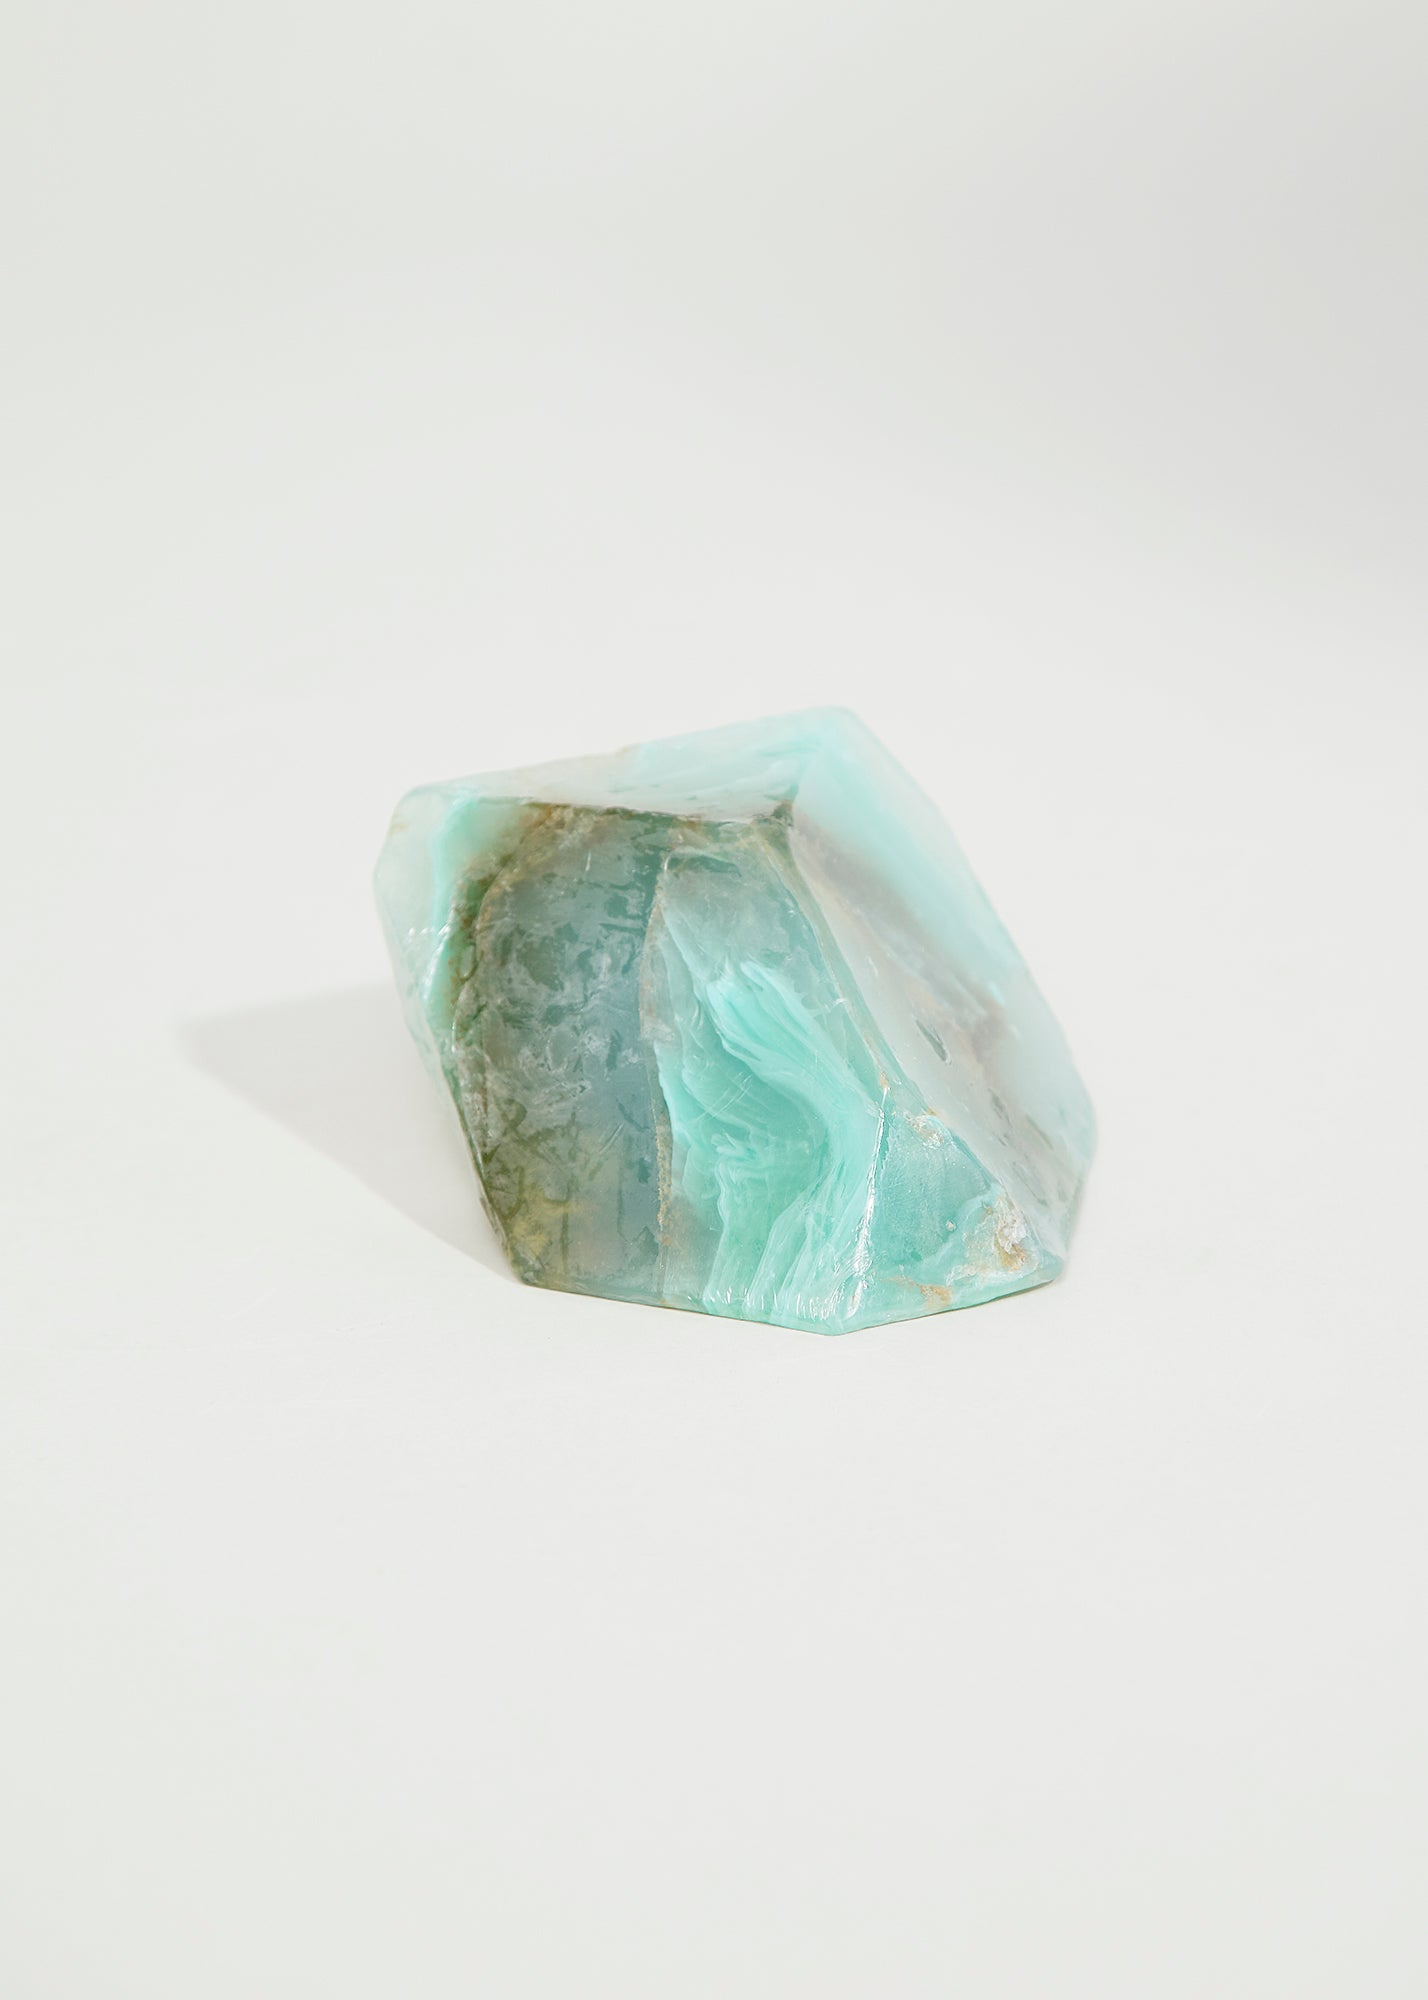 Rock Soap · Jade - Trine Tuxen Jewelry